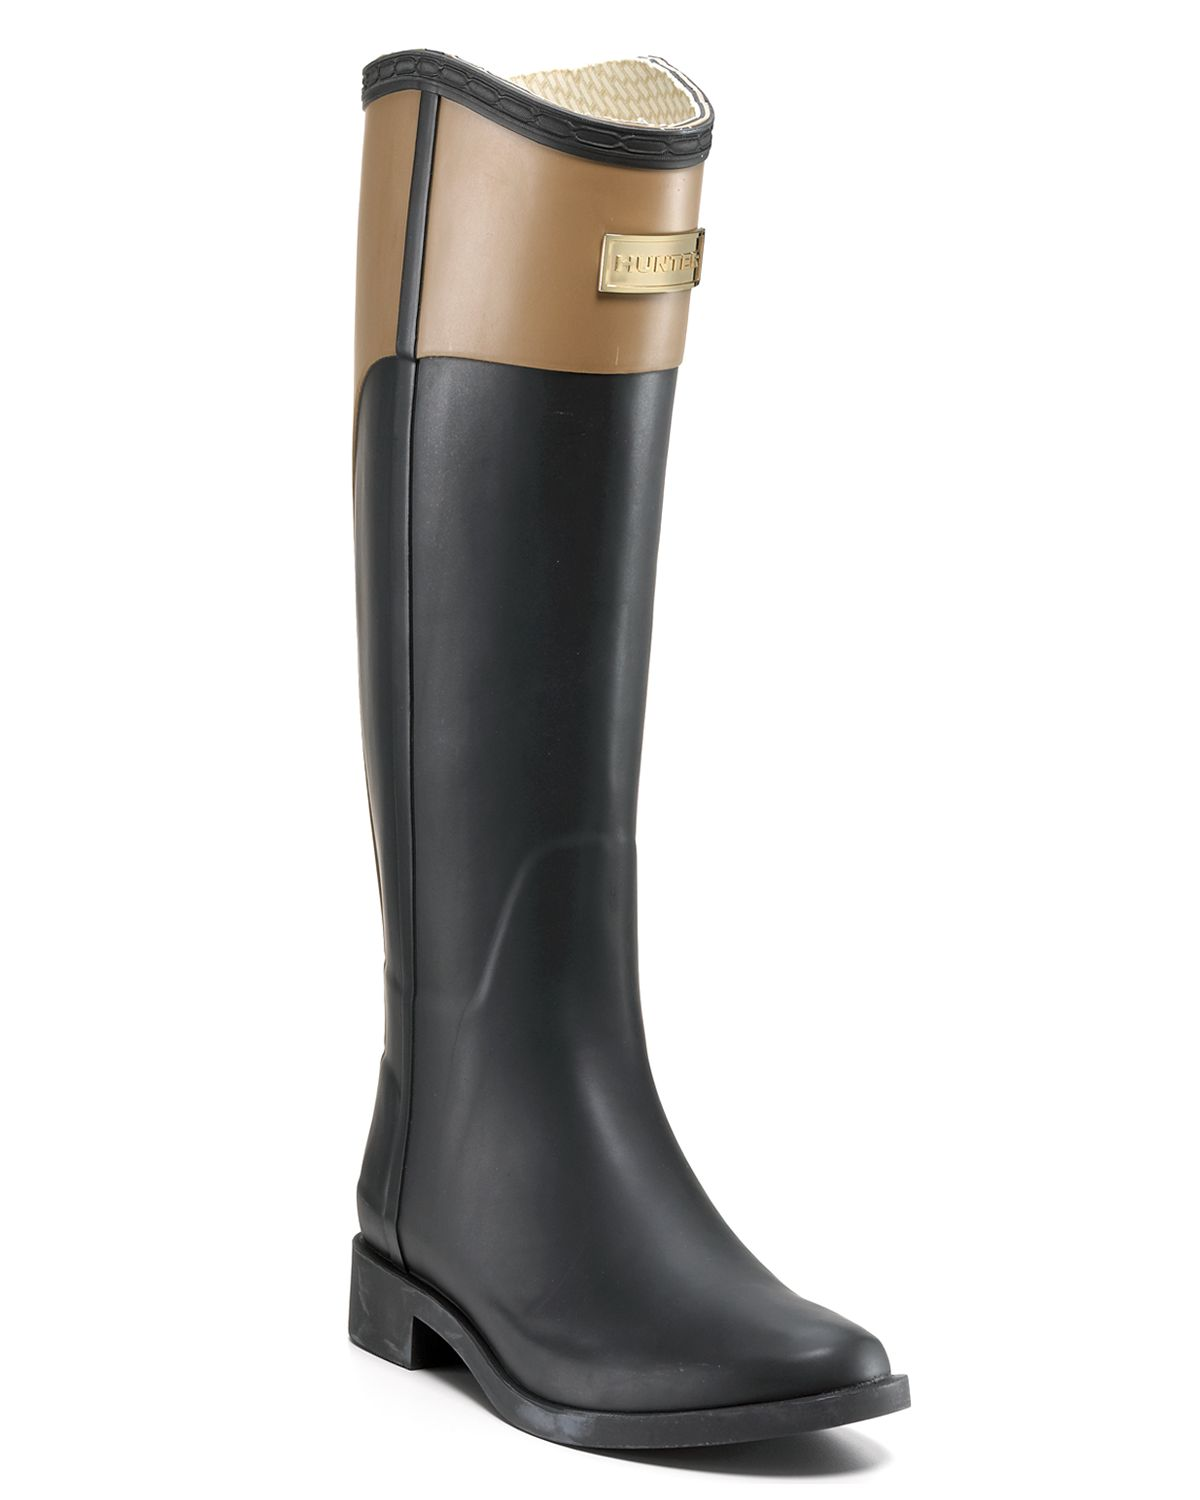 Fashion Friday: Rain Boots 4